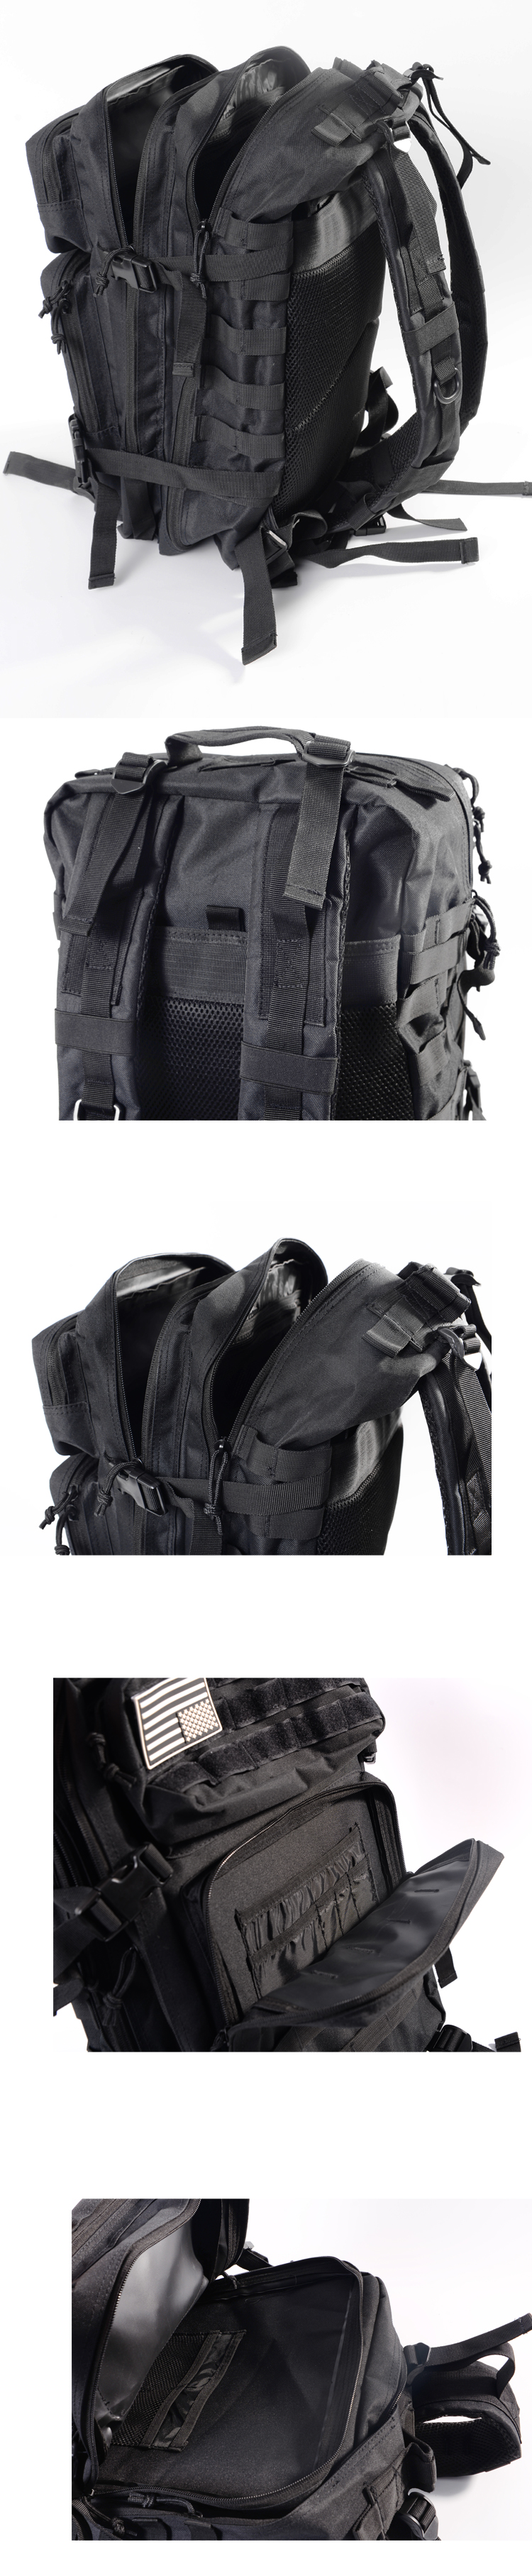 Hot sale  large capacity shoulder  military tactical  backpack